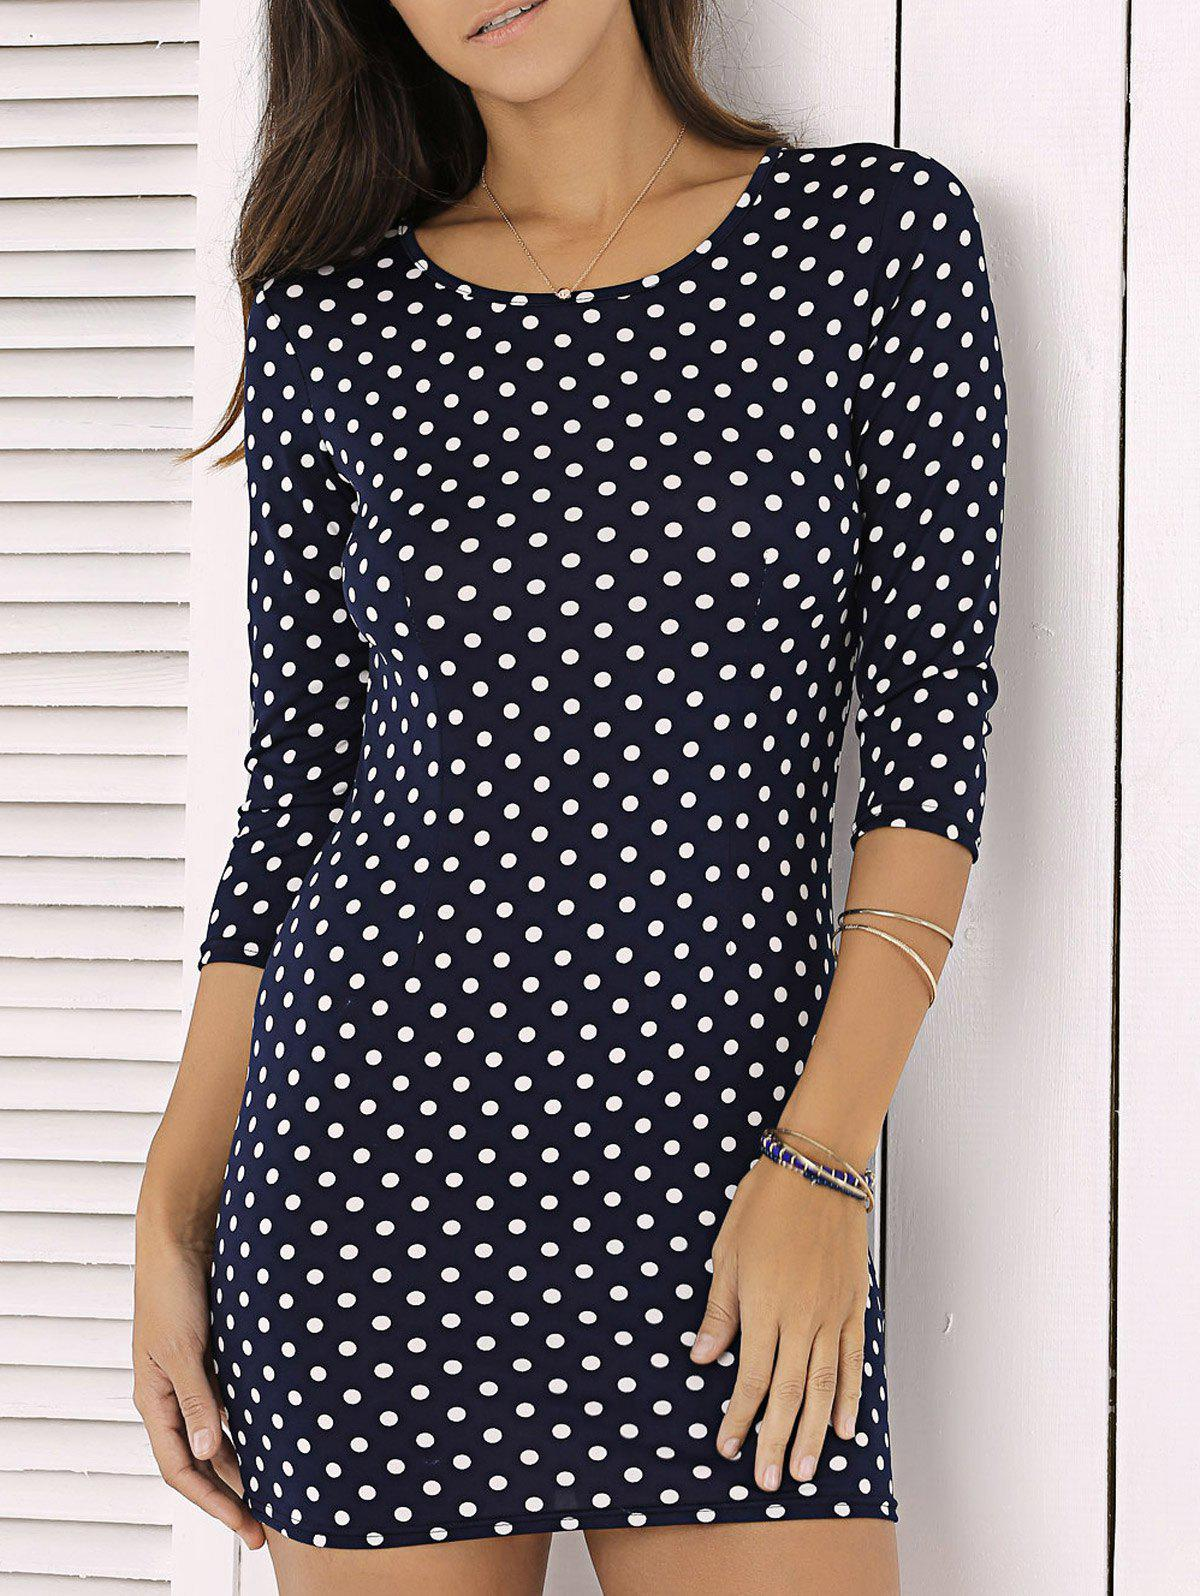 Fashion Polka Dot Print 3/4 Sleeve Sheath Mini DressWomen<br><br><br>Size: M<br>Color: DEEP BLUE